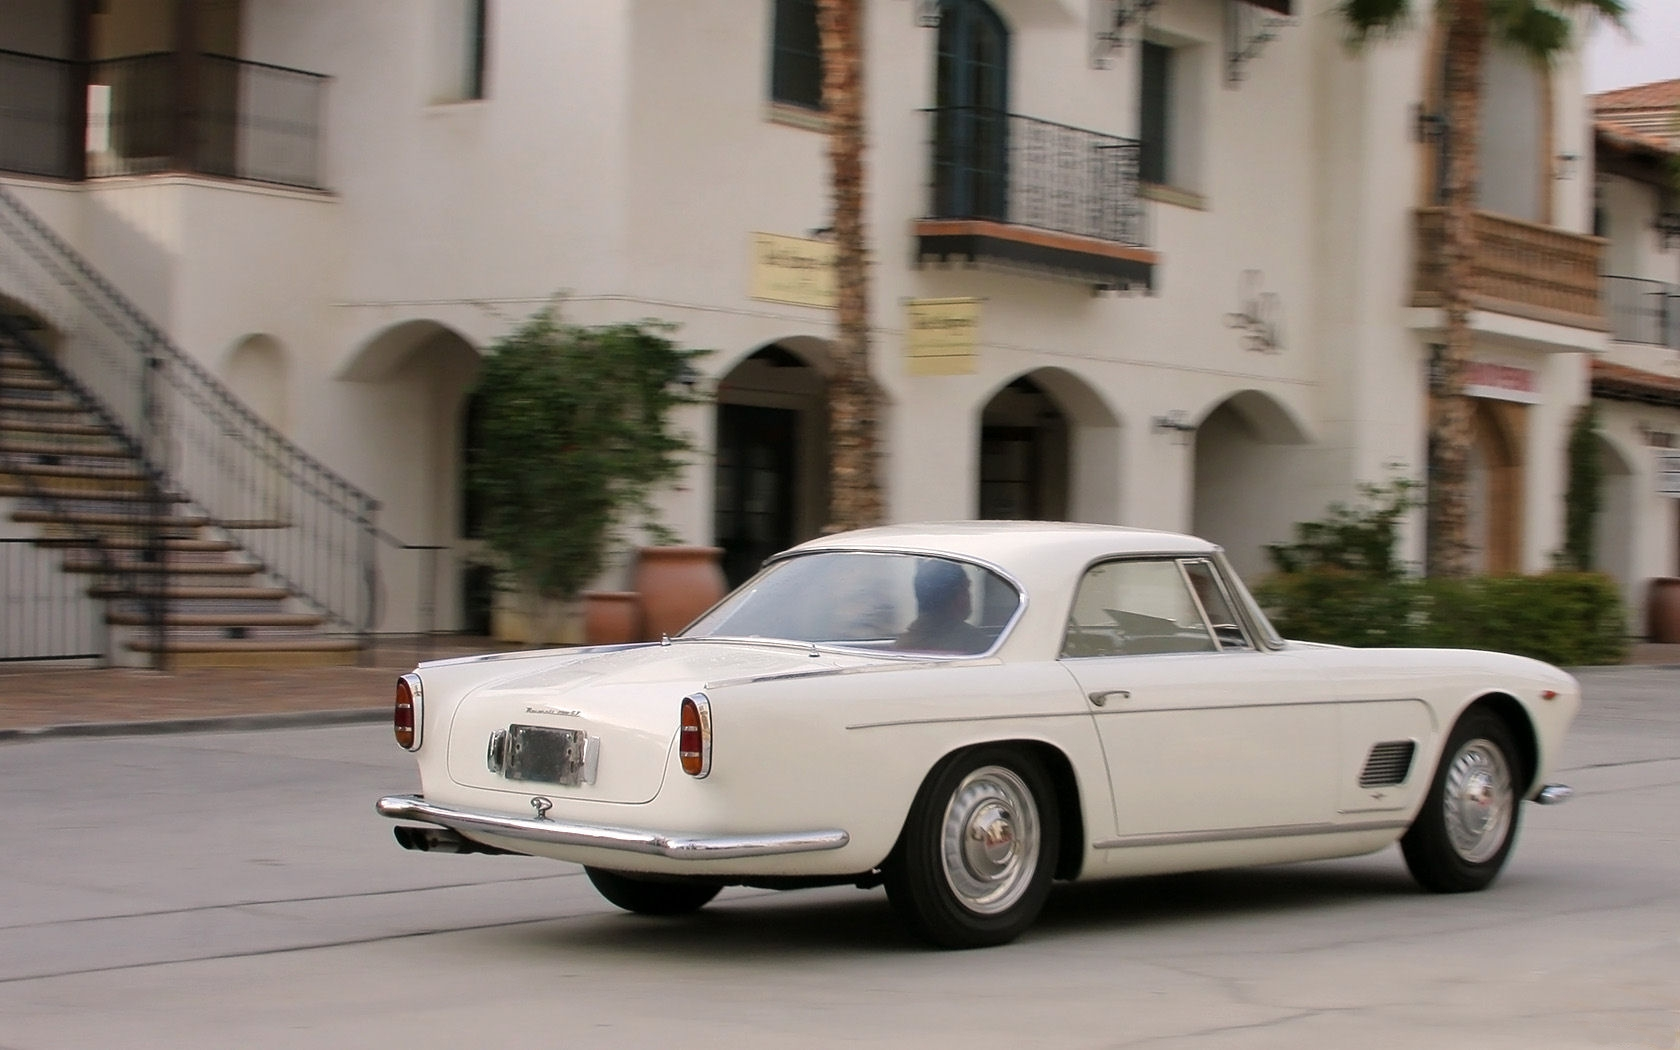 file1960 maserati 3500 gt coupe white rvrjpg